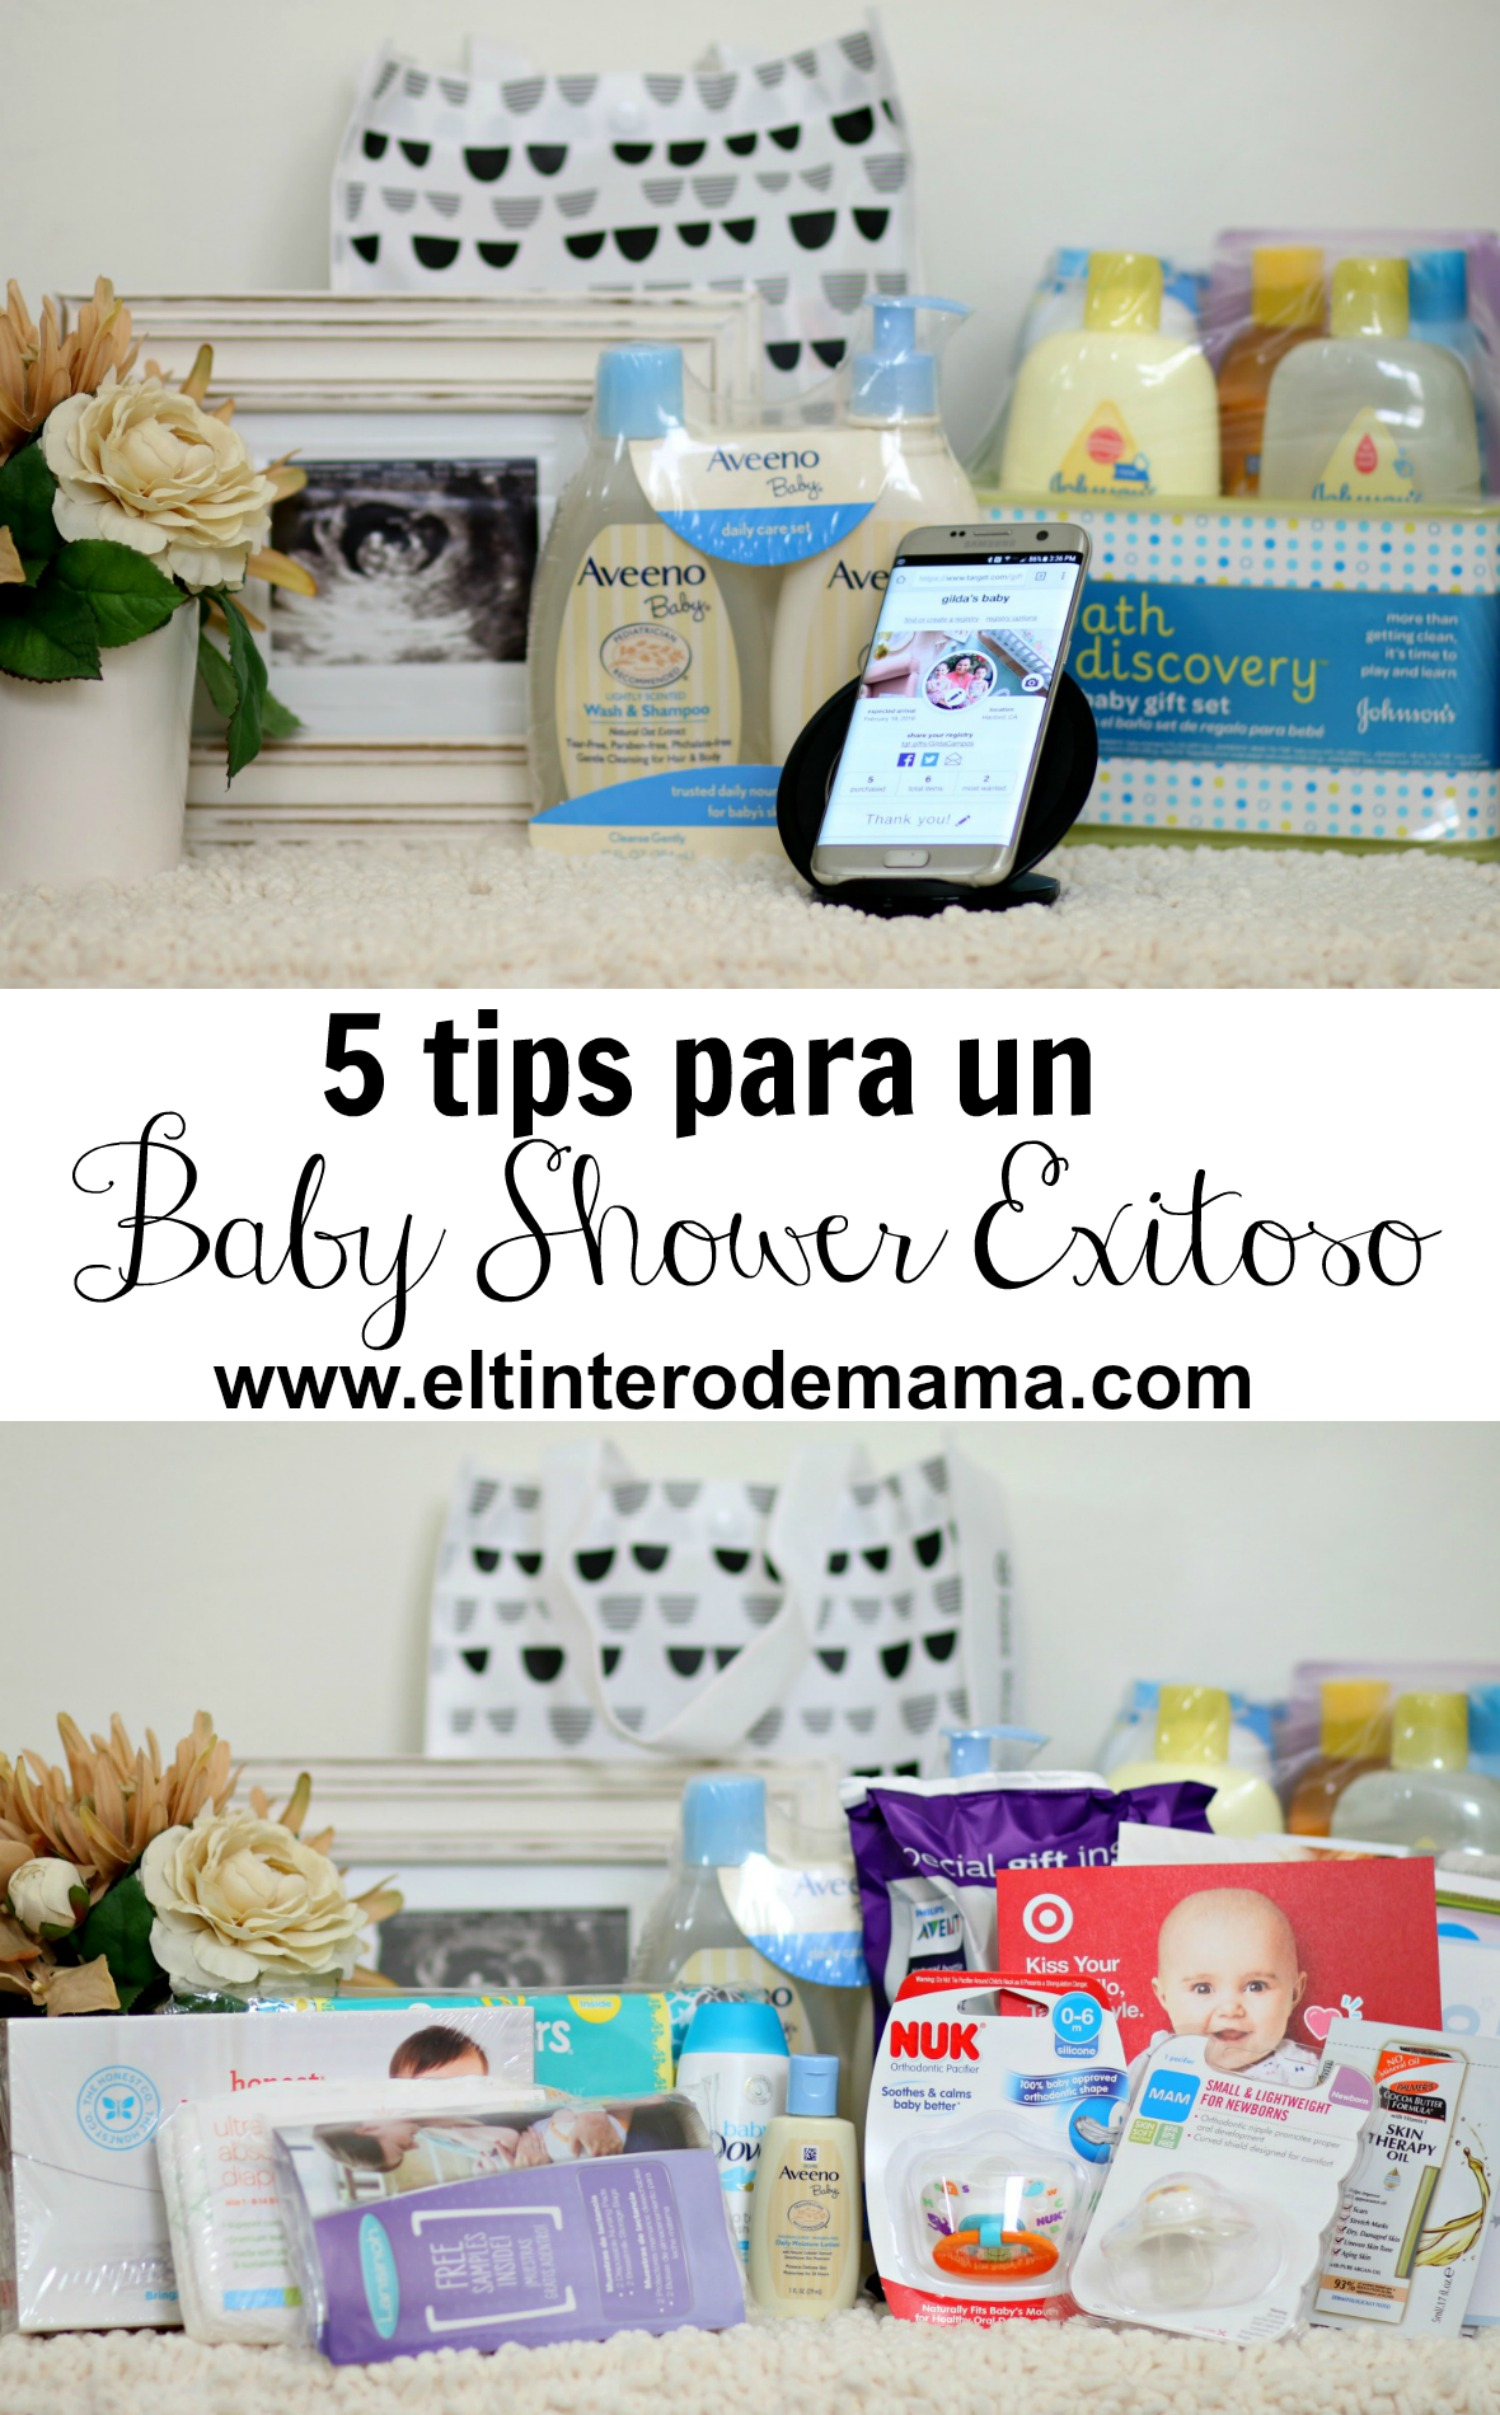 5-tips-para-un-baby-shower-exitoso